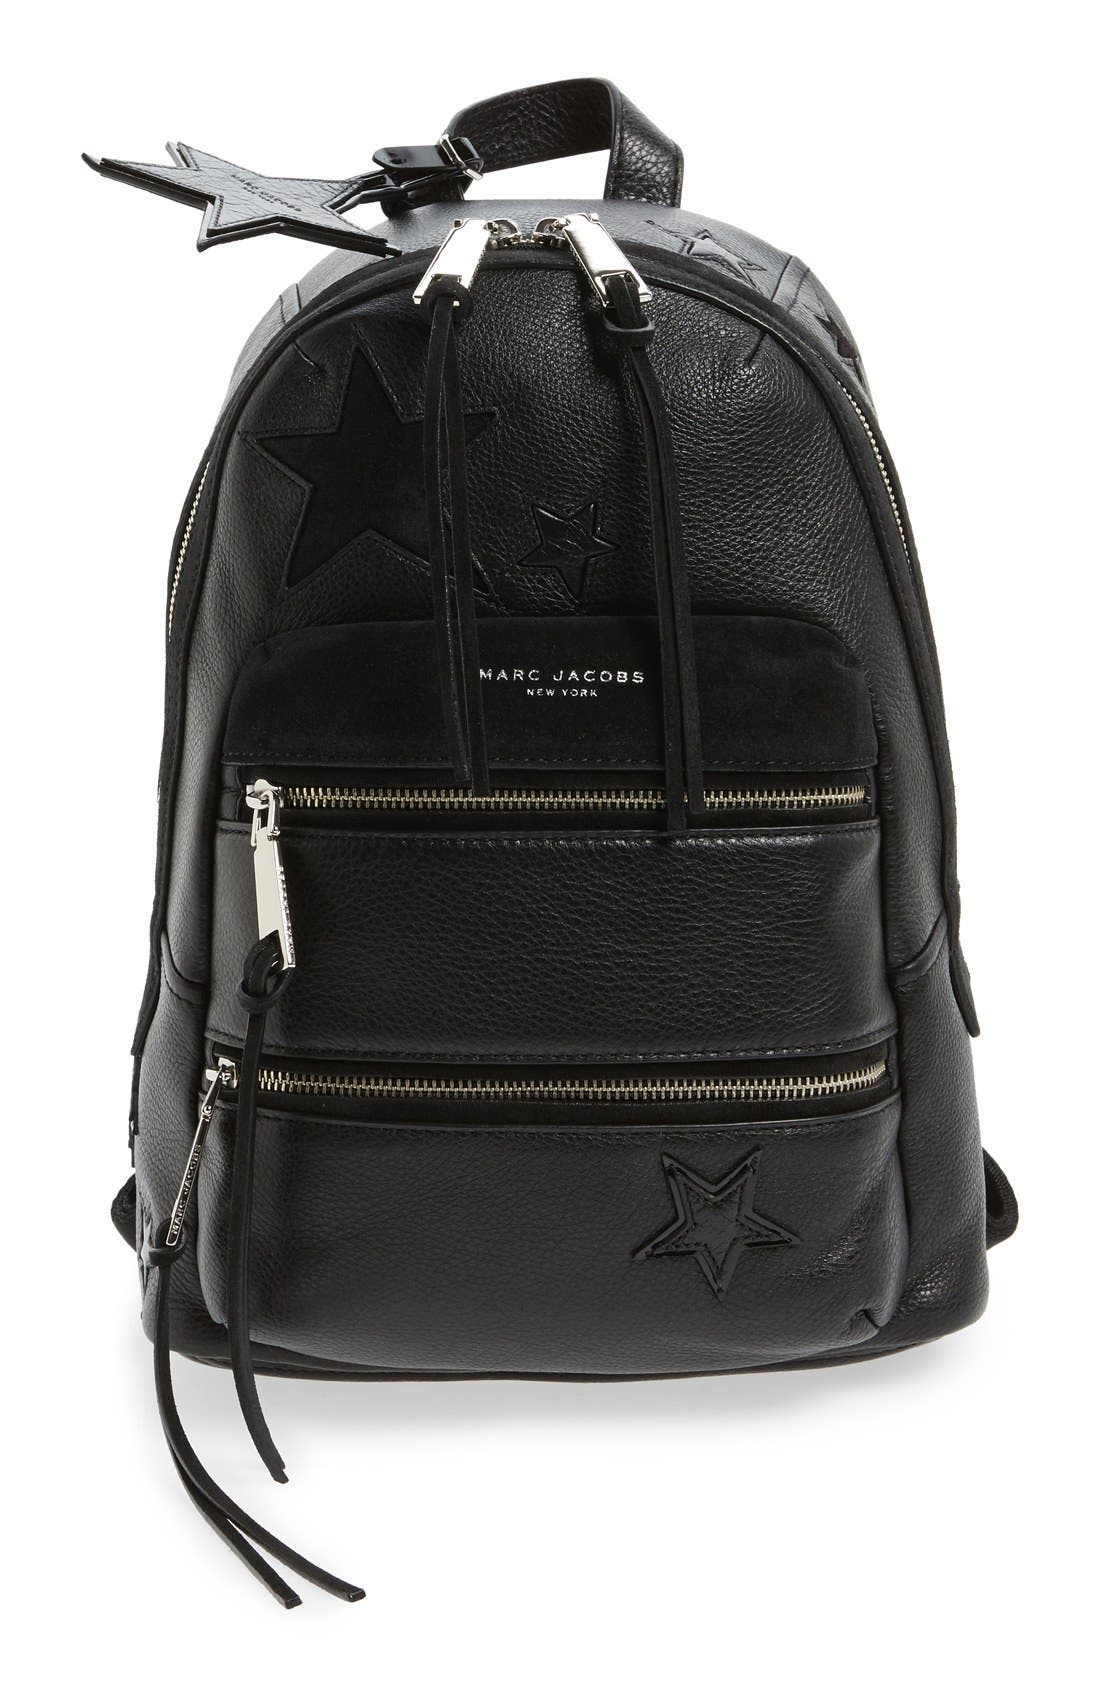 Main Image - MARC JACOBS 'Star Patchwork' Leather Backpack